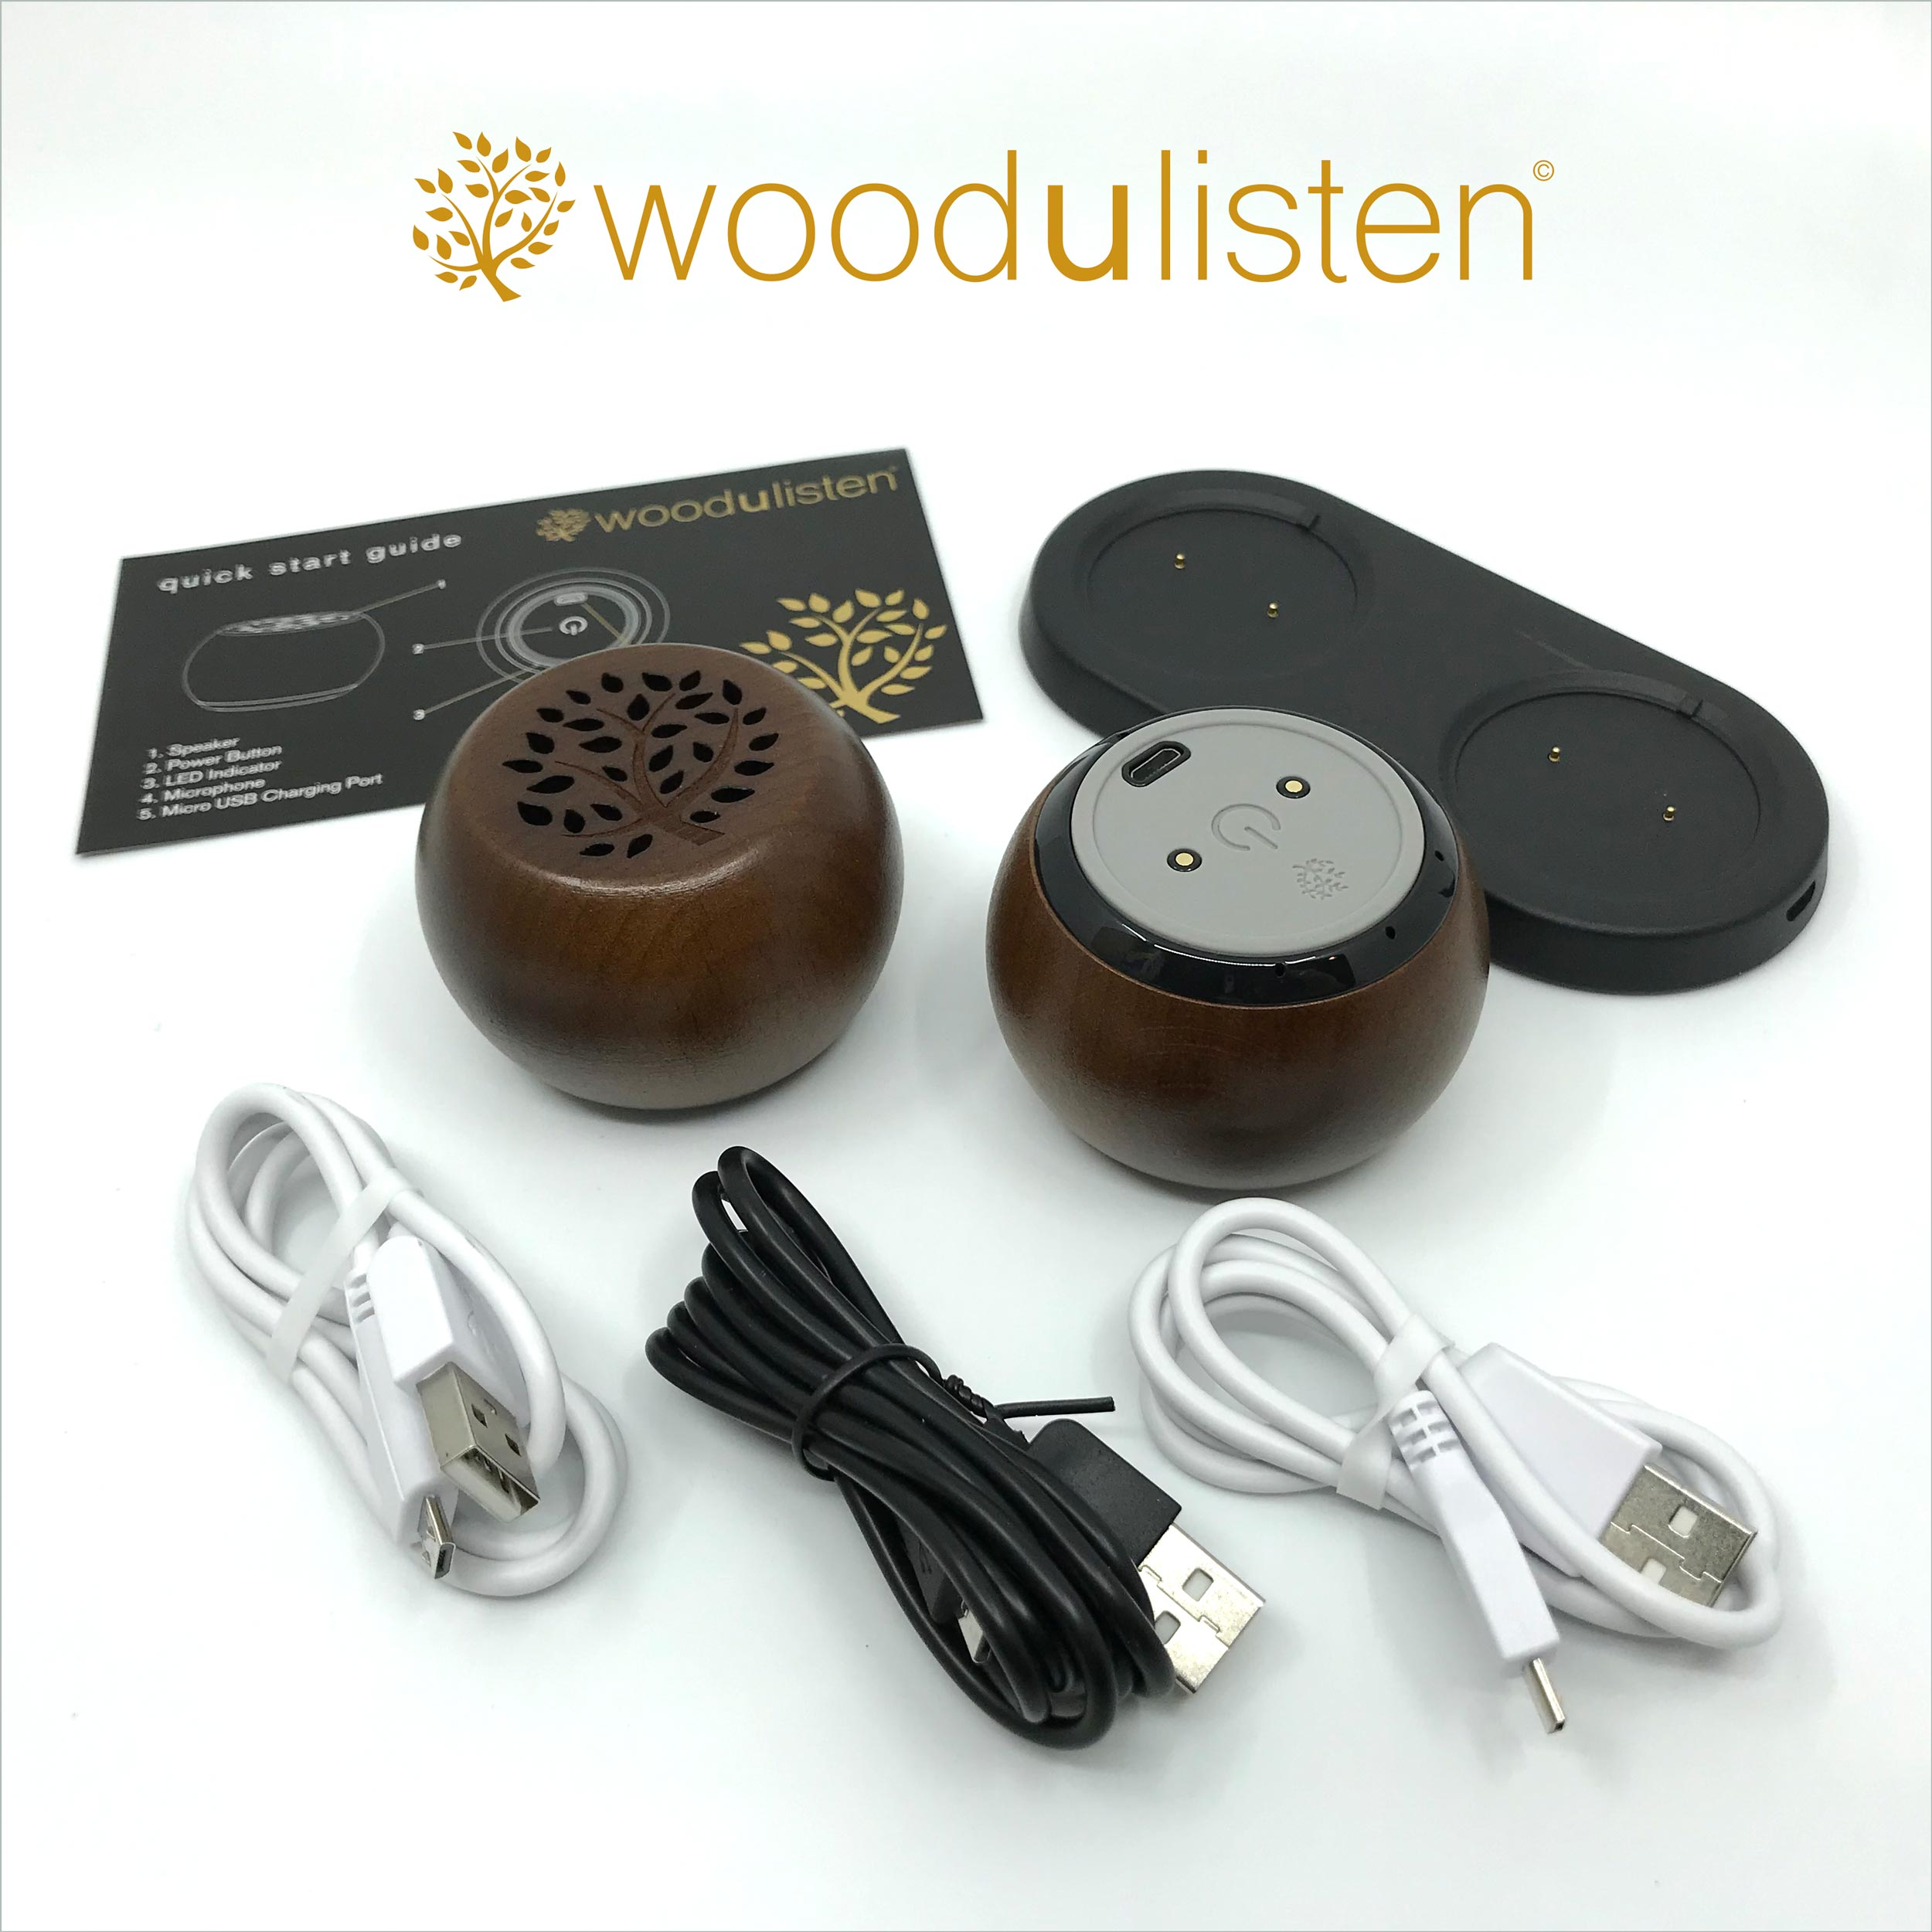 JAVATONE TREE AND BRANCH WOODULISTEN TWS STEREO SET WITH CHARGING DOCK: